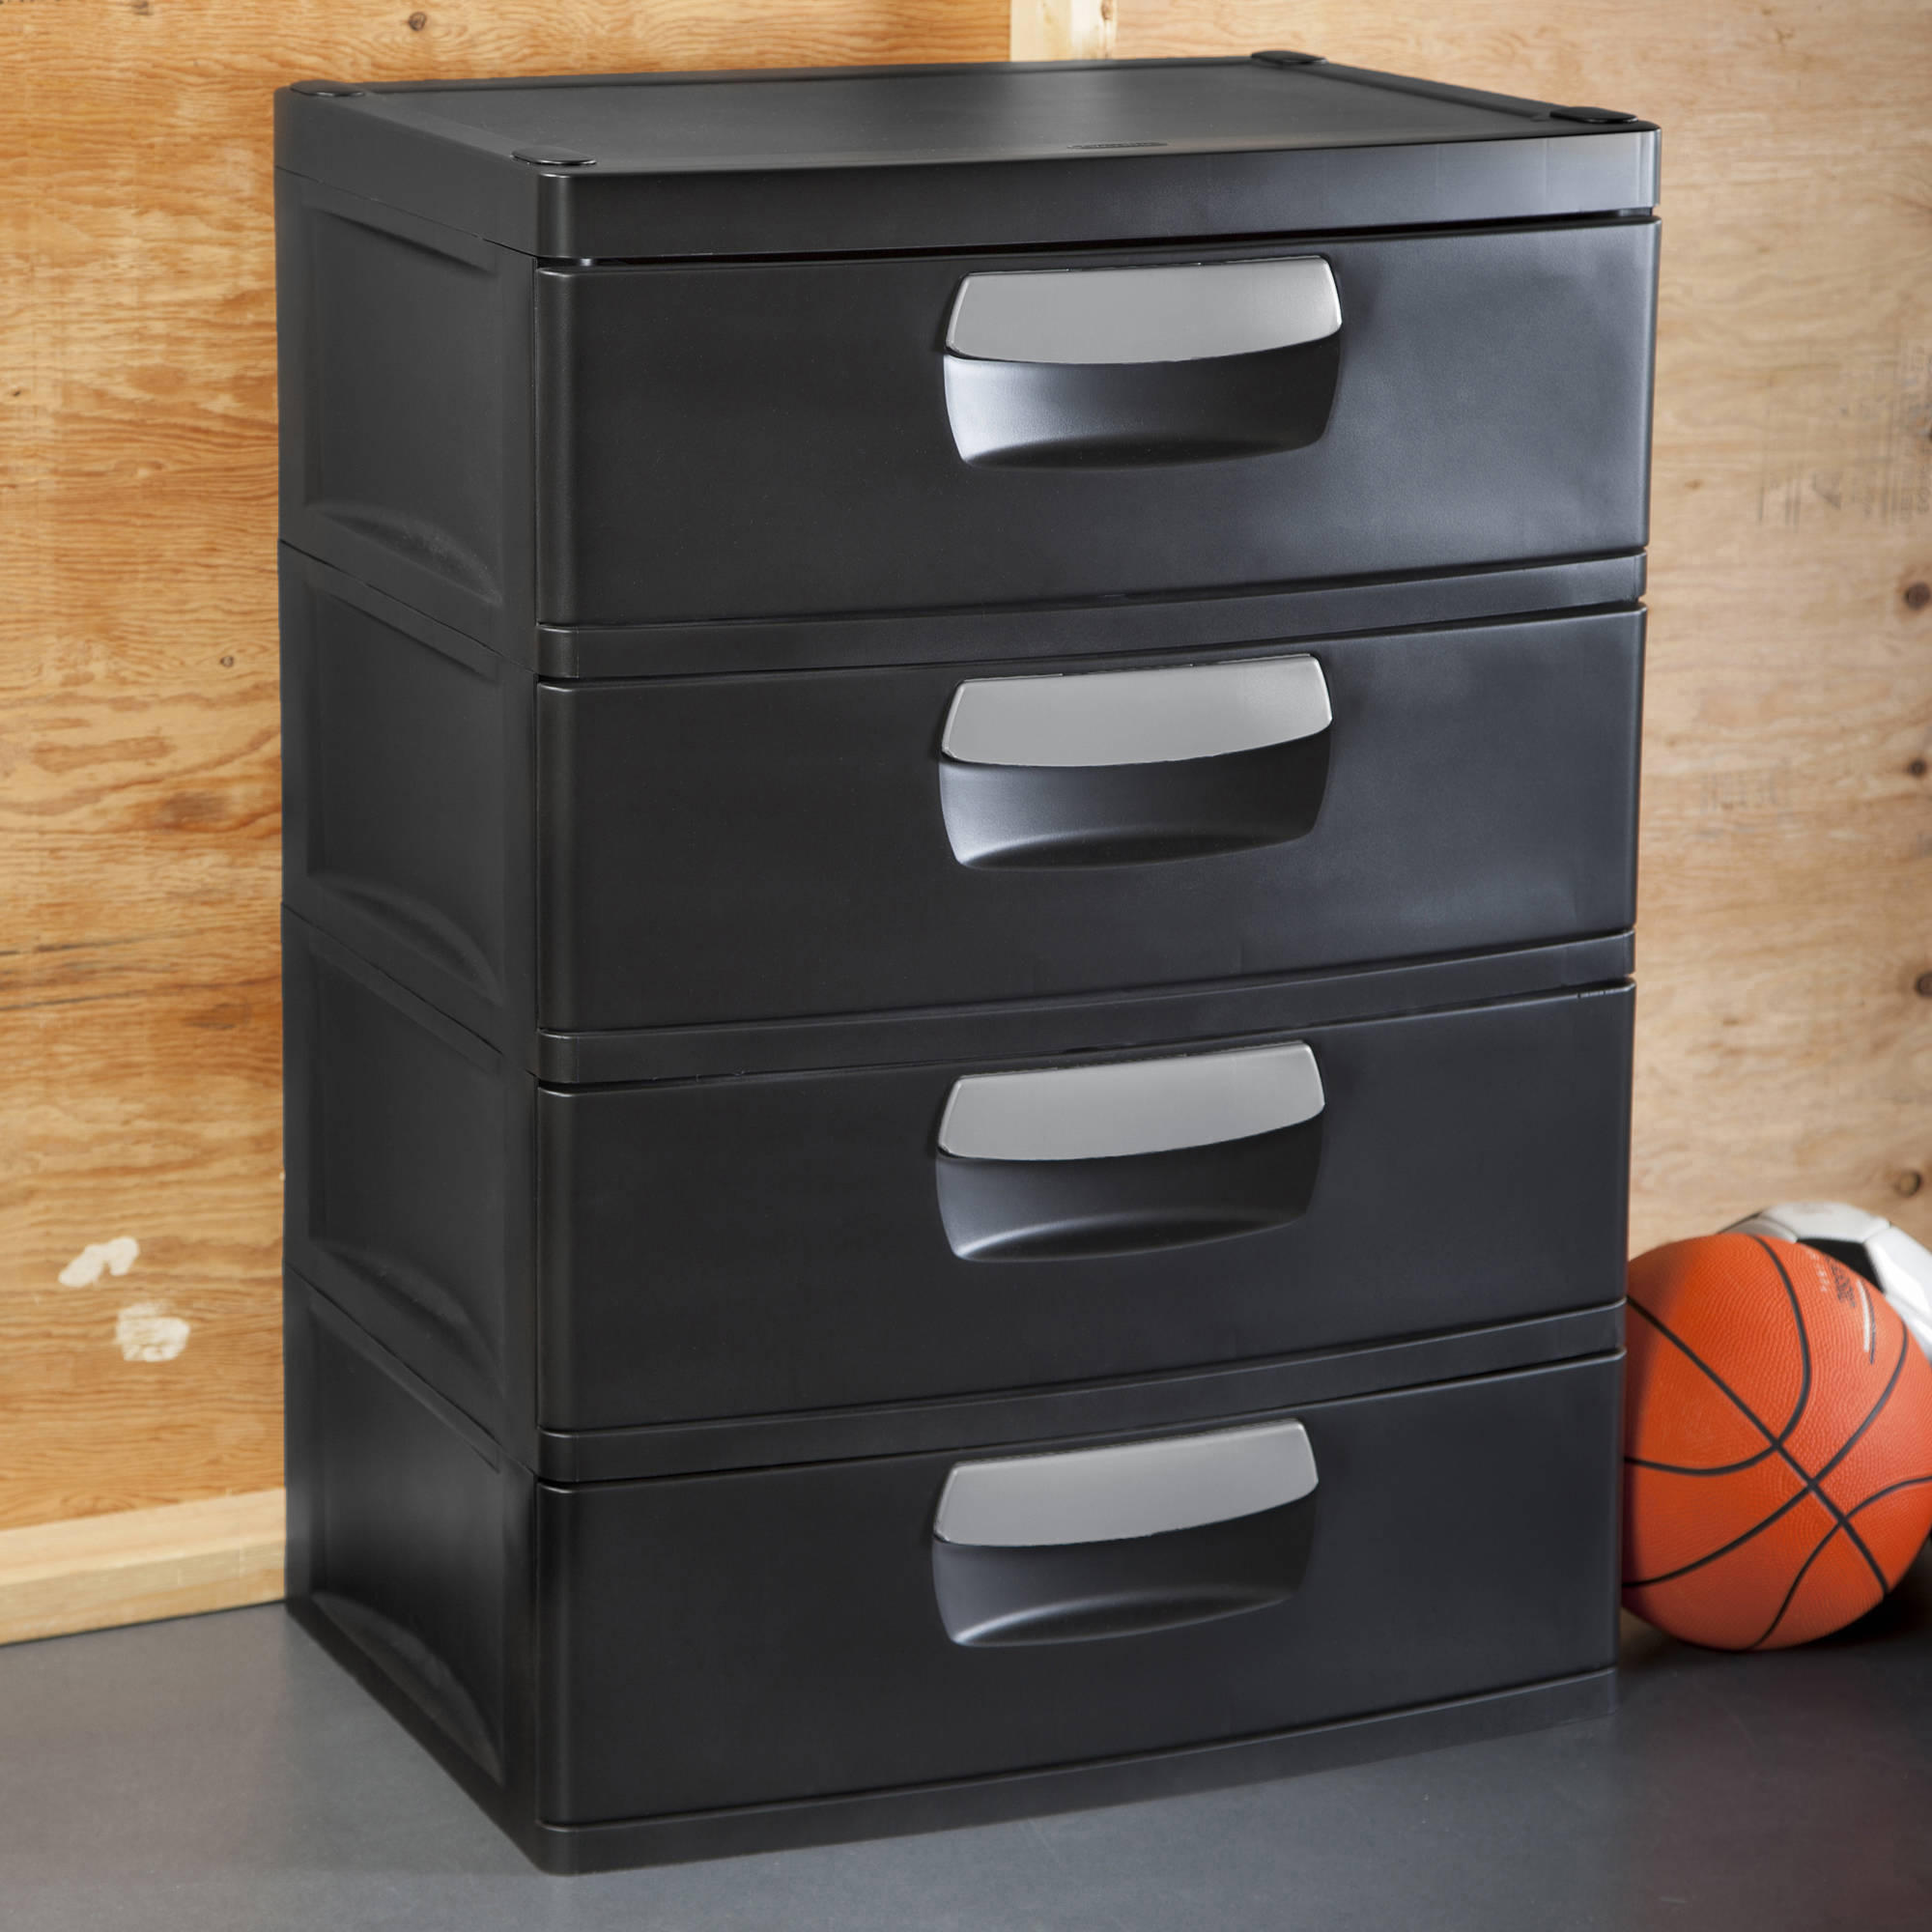 Sterilite 4-Drawer Cabinet, Black